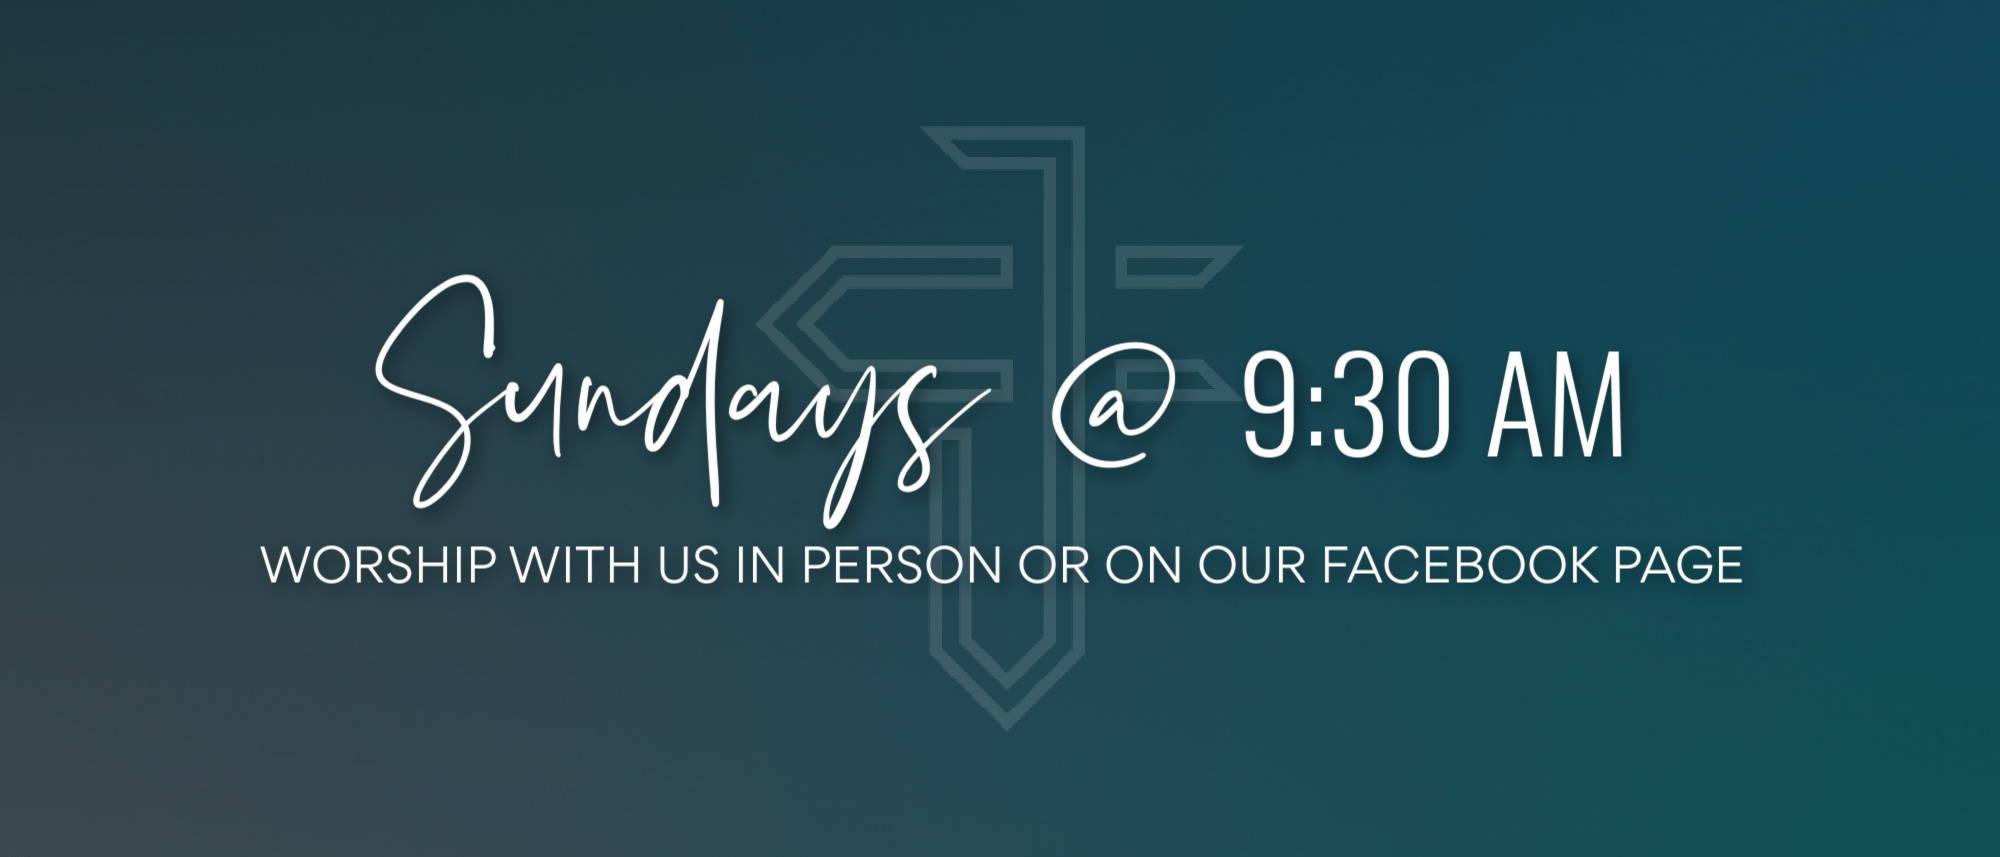 Worship with us at Journey Church River Falls on Sundays at 9:30 AM!